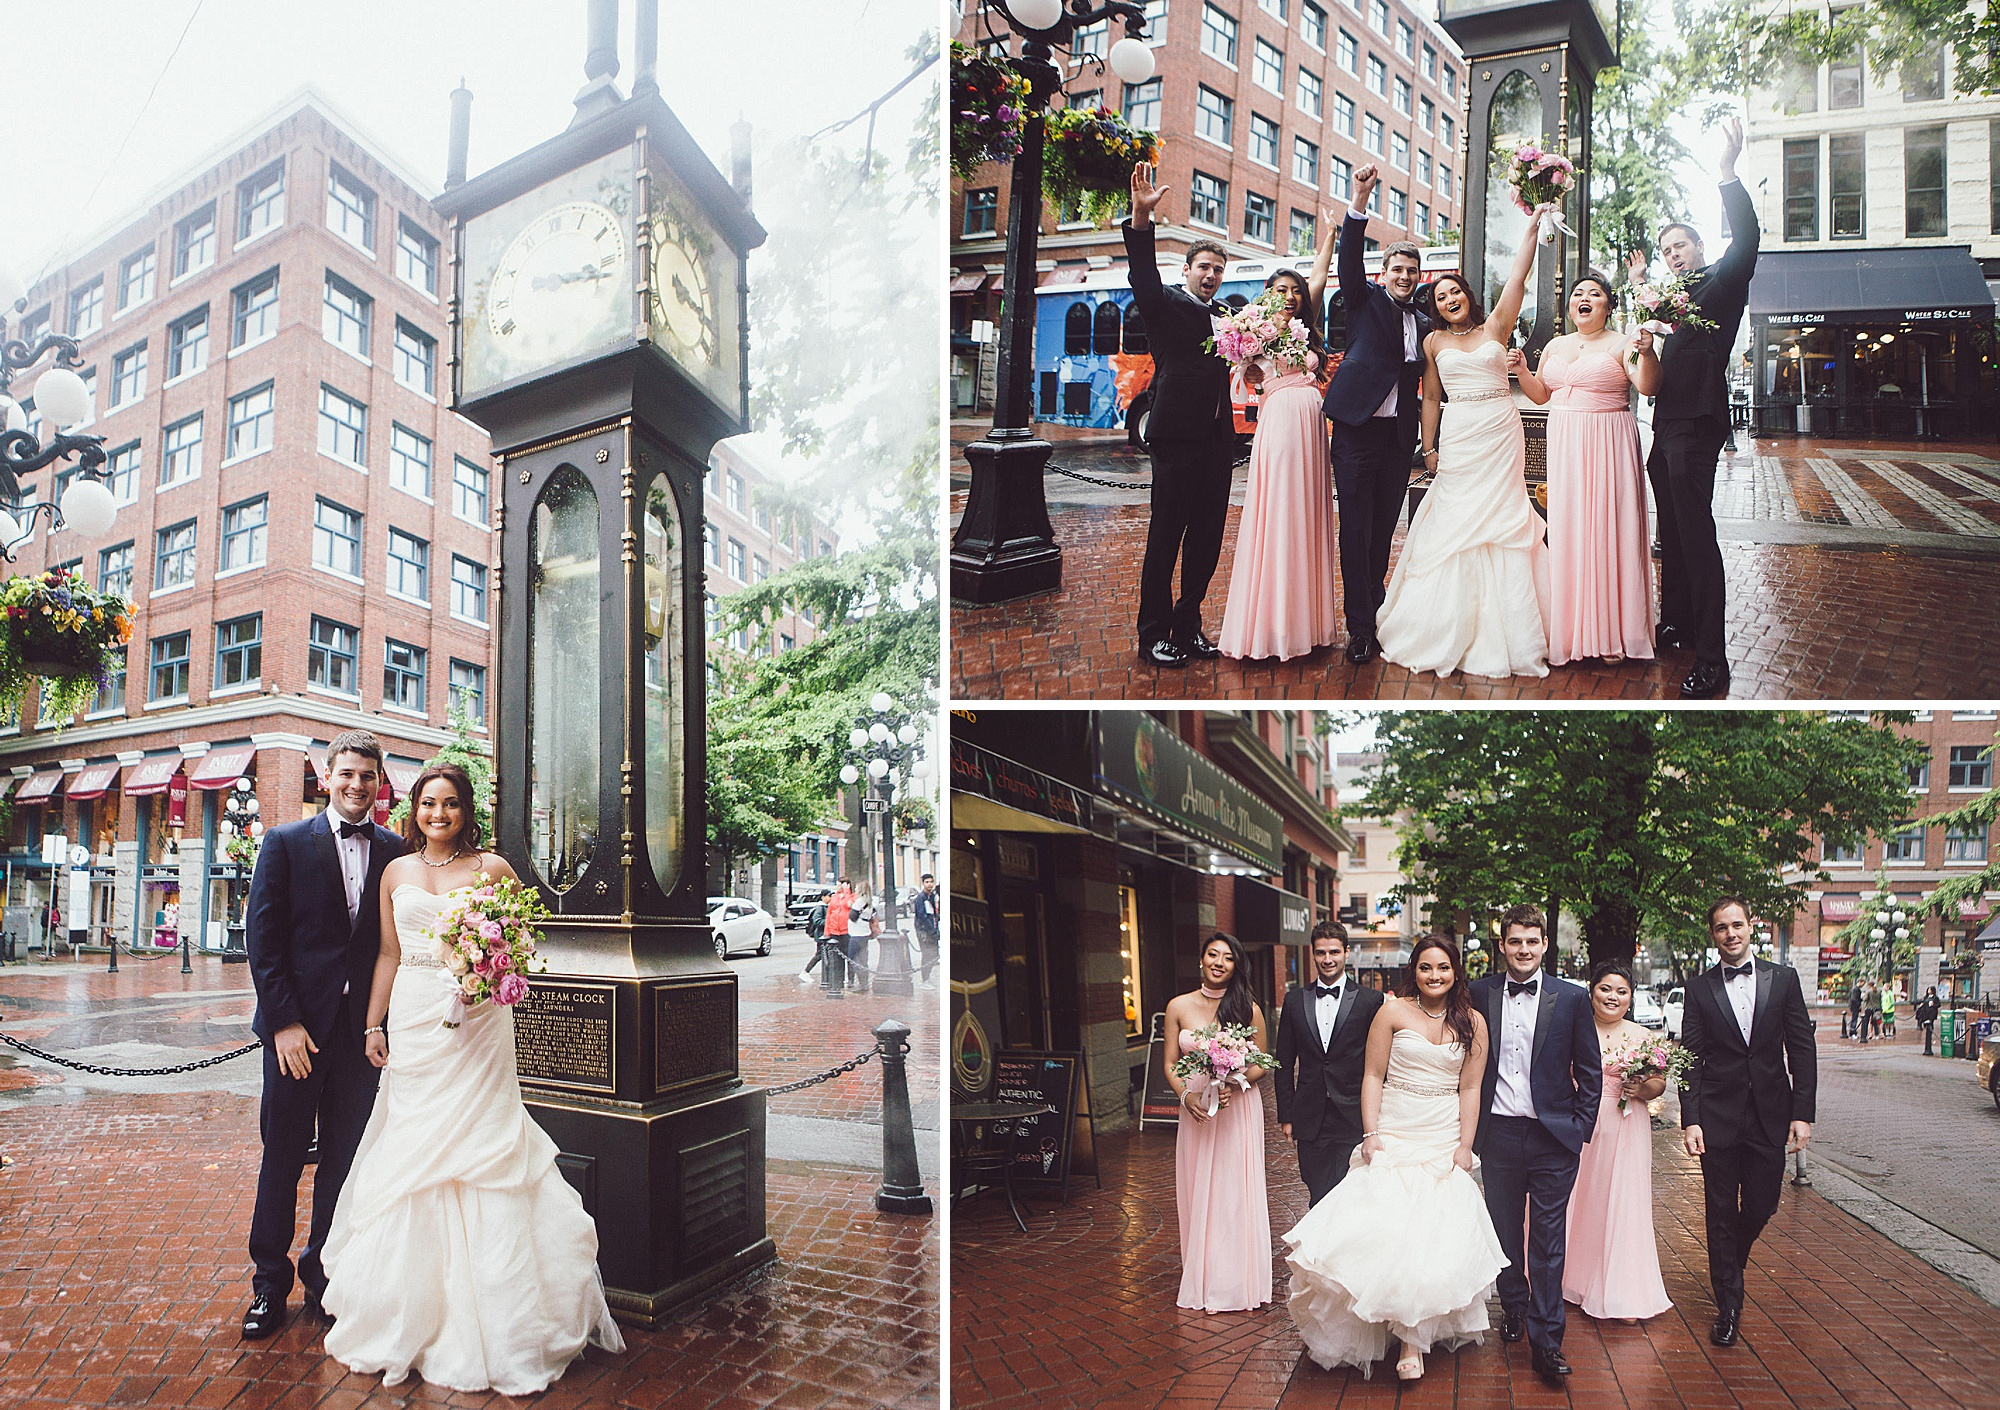 Wedding portraits in Gastown by the historic steam clock